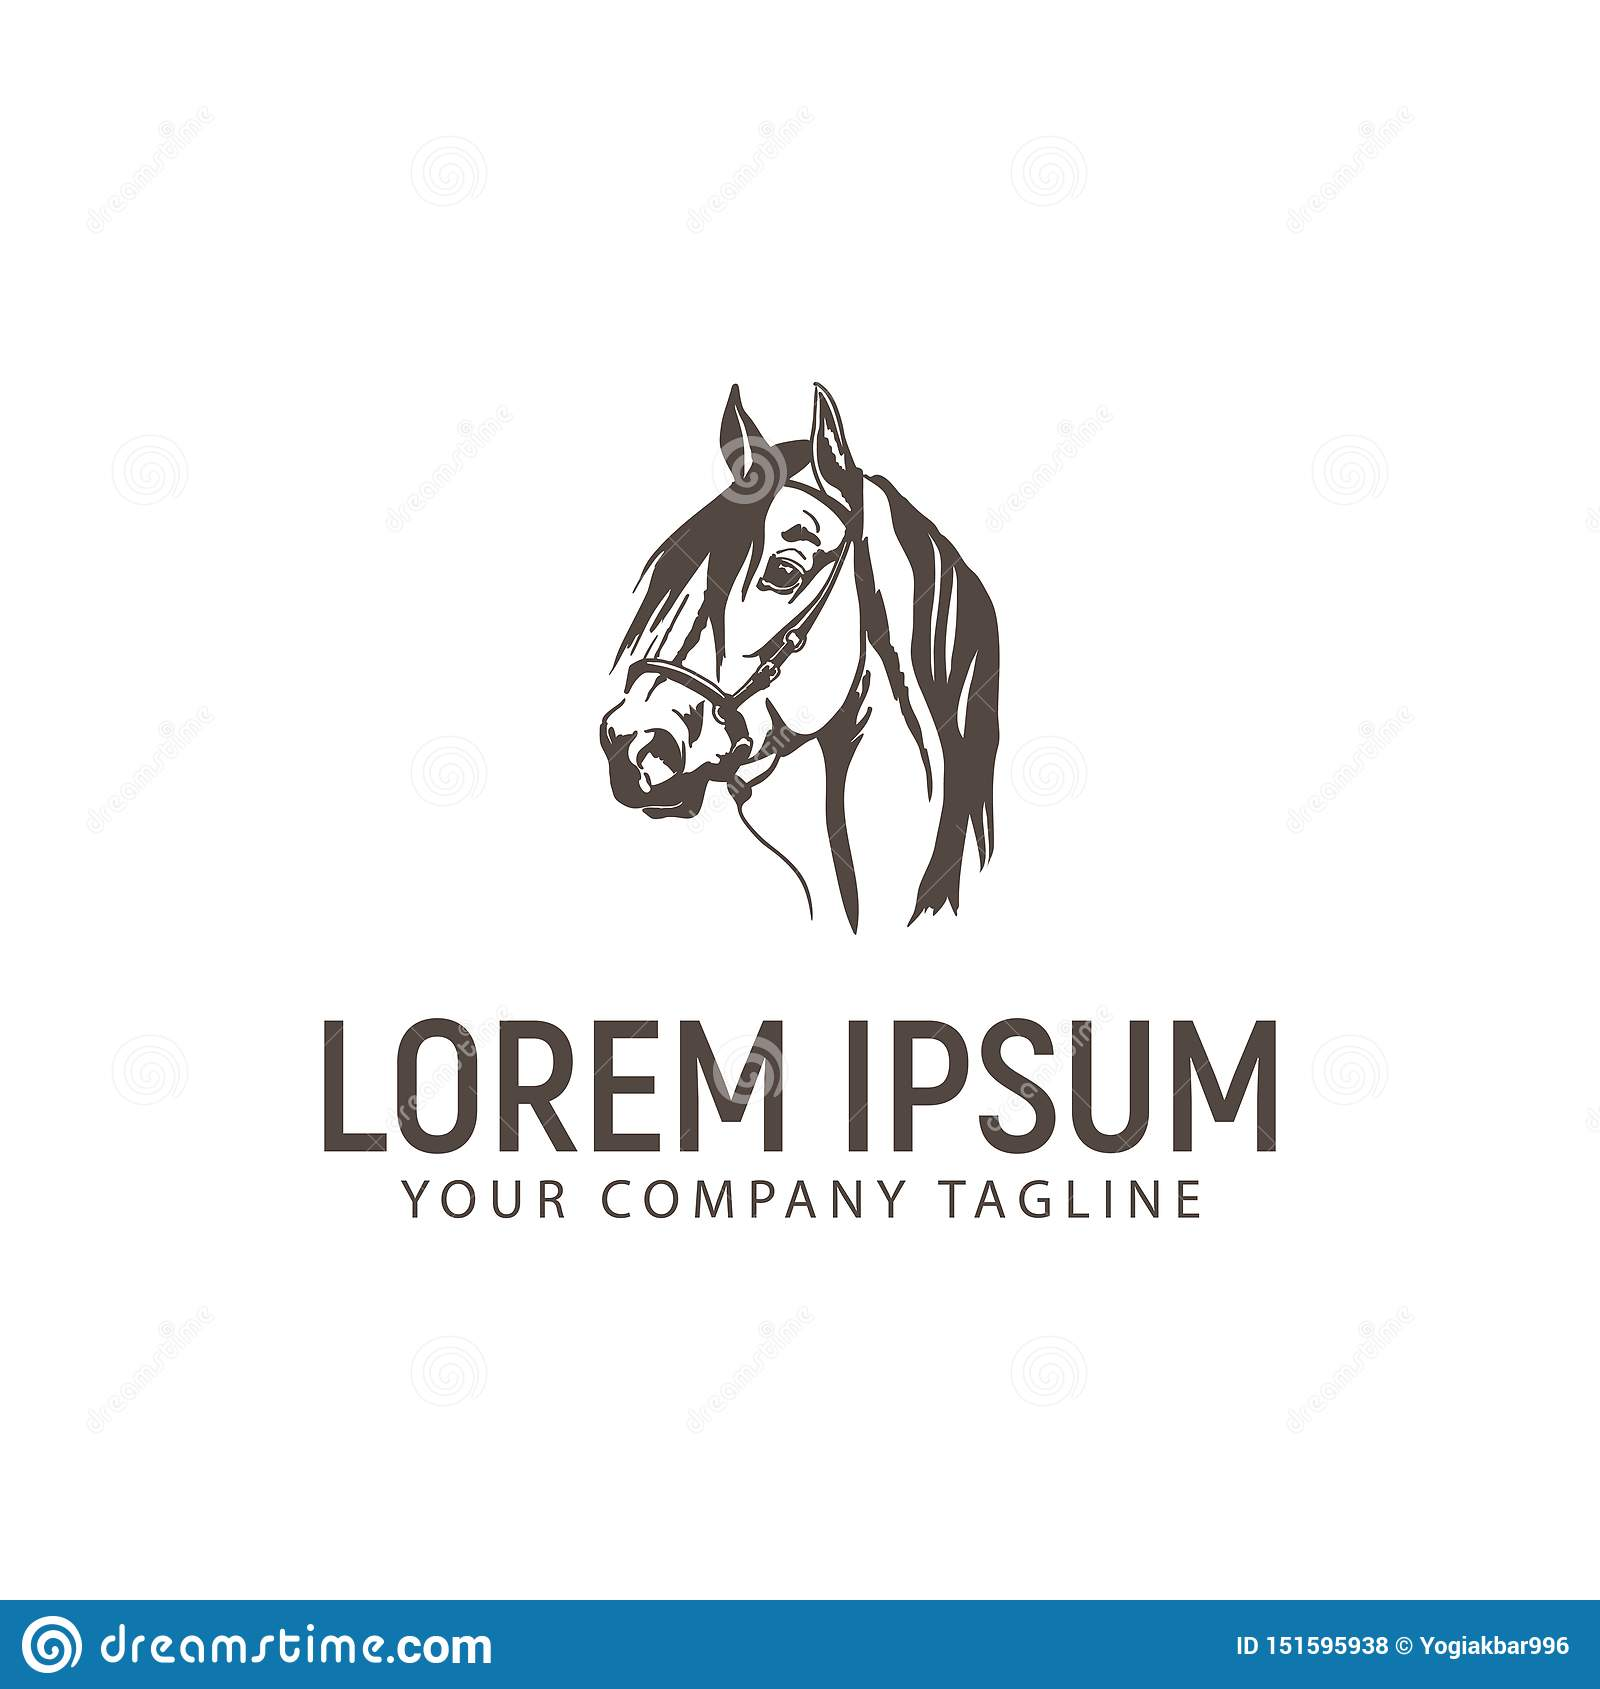 Horse Logo Vintage Stock Illustrations 4 715 Horse Logo Vintage Stock Illustrations Vectors Clipart Dreamstime